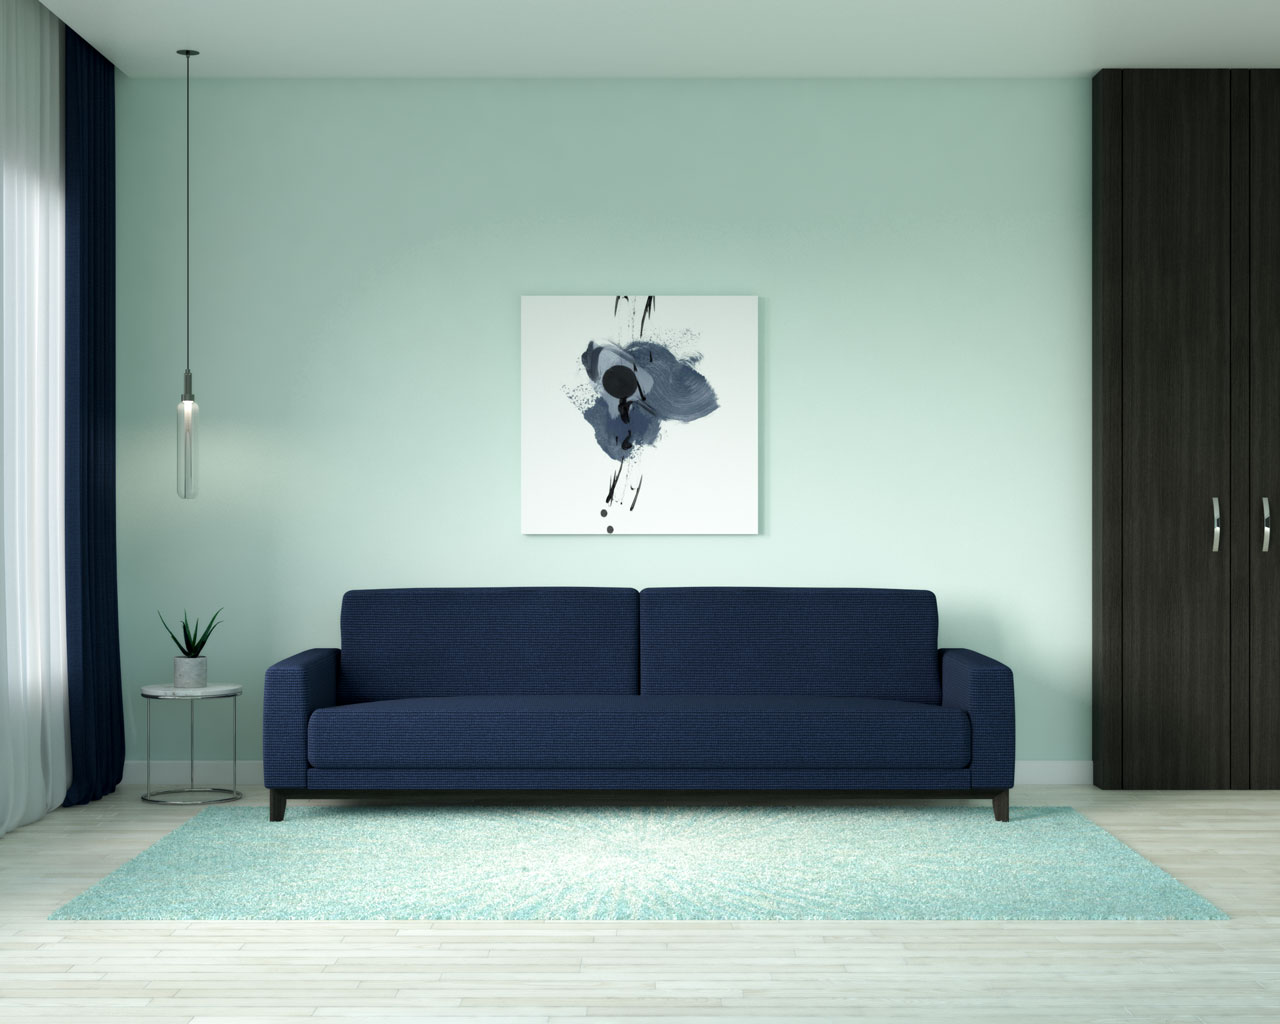 Mint wall with navy sofa